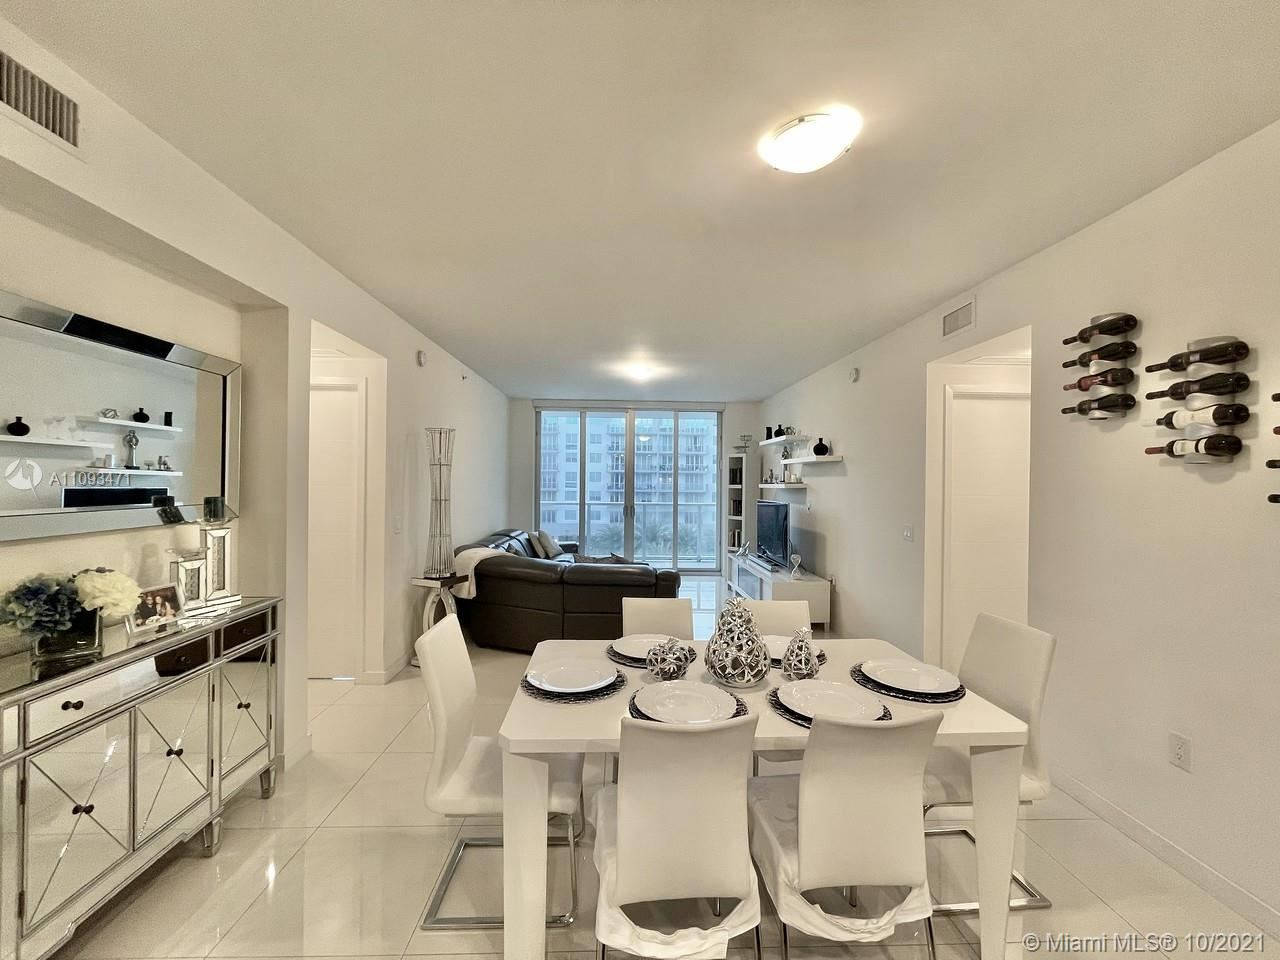 7751 NW 107th Ave #409, Doral, FL 33178 - #: A11093471